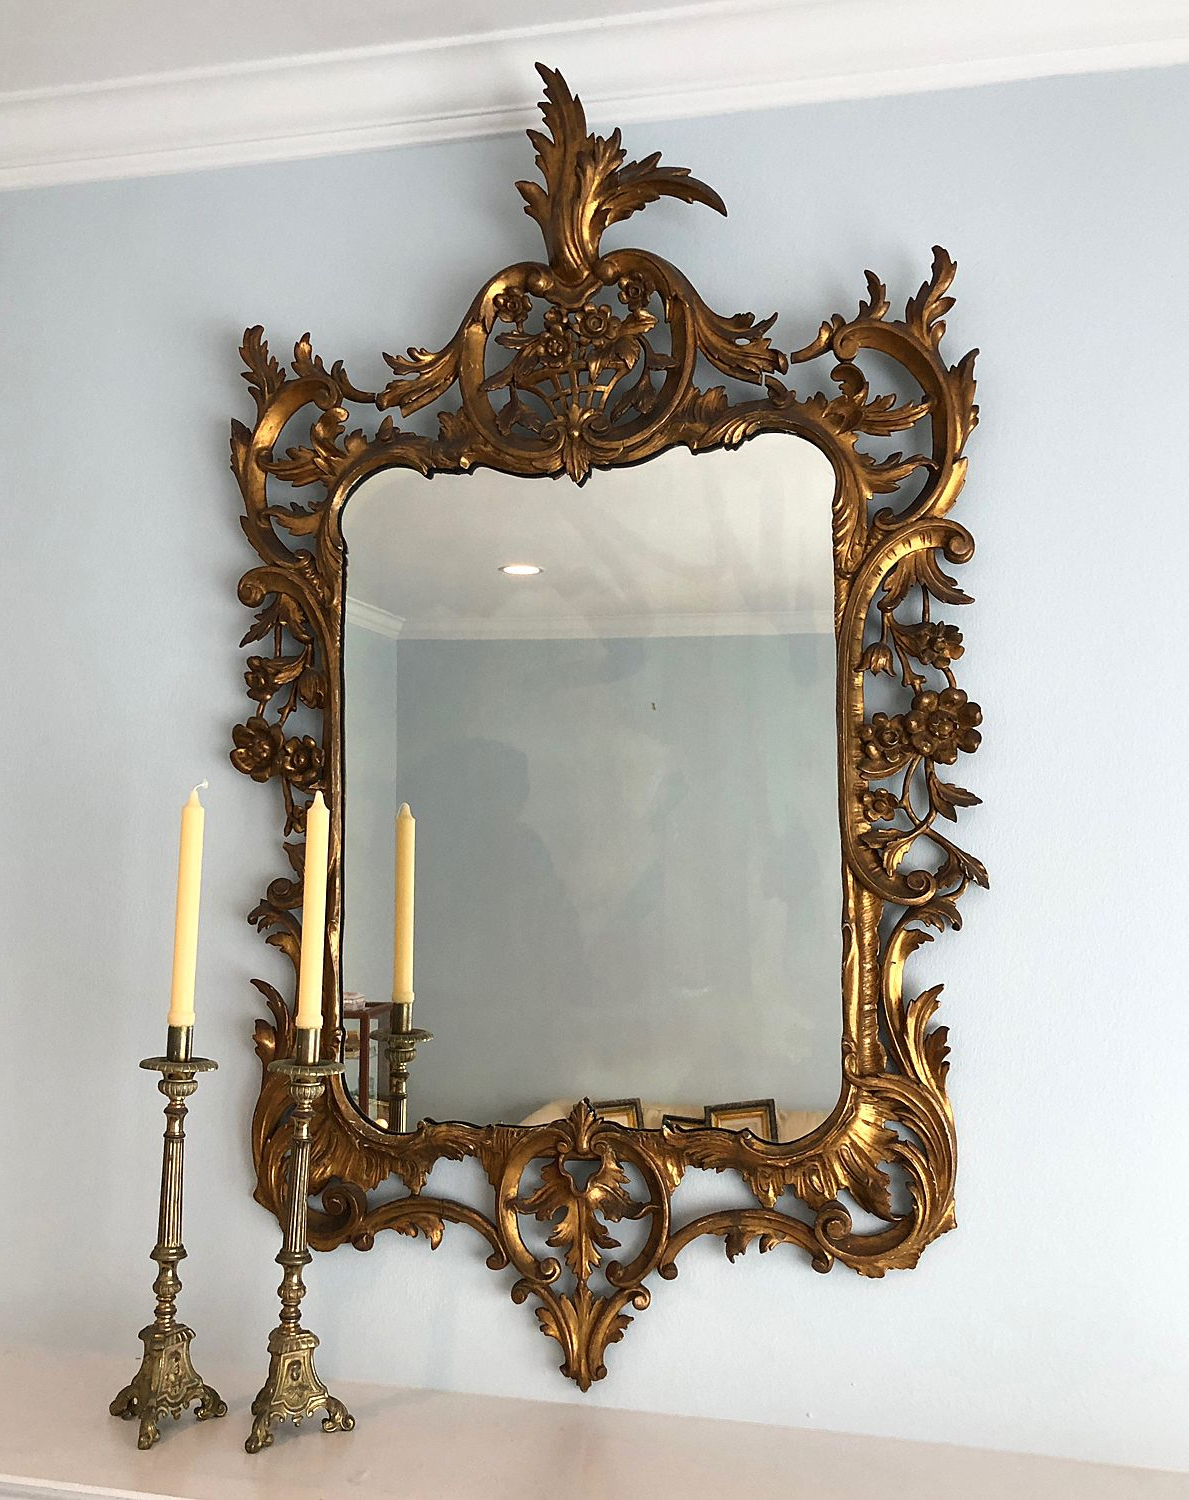 Most Current Large Vintage Italian Carved Gilt Wood Wall Mirror In 2019 Throughout Large Wood Wall Mirrors (View 15 of 20)